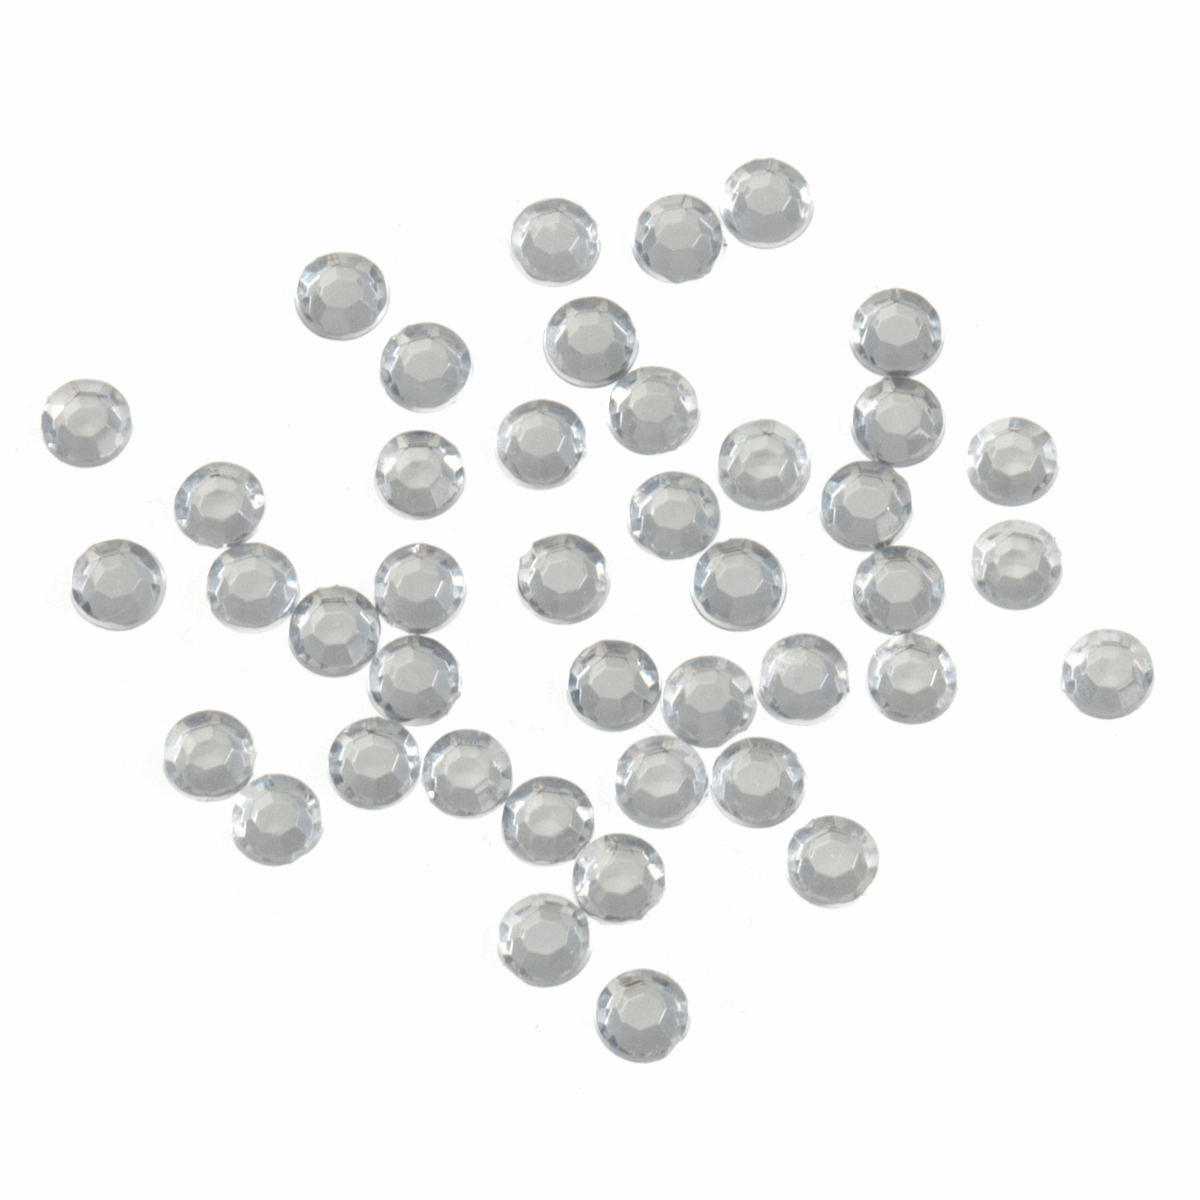 Picture of Acrylic Stones: Glue-On: Round: Medium-5mm: Clear